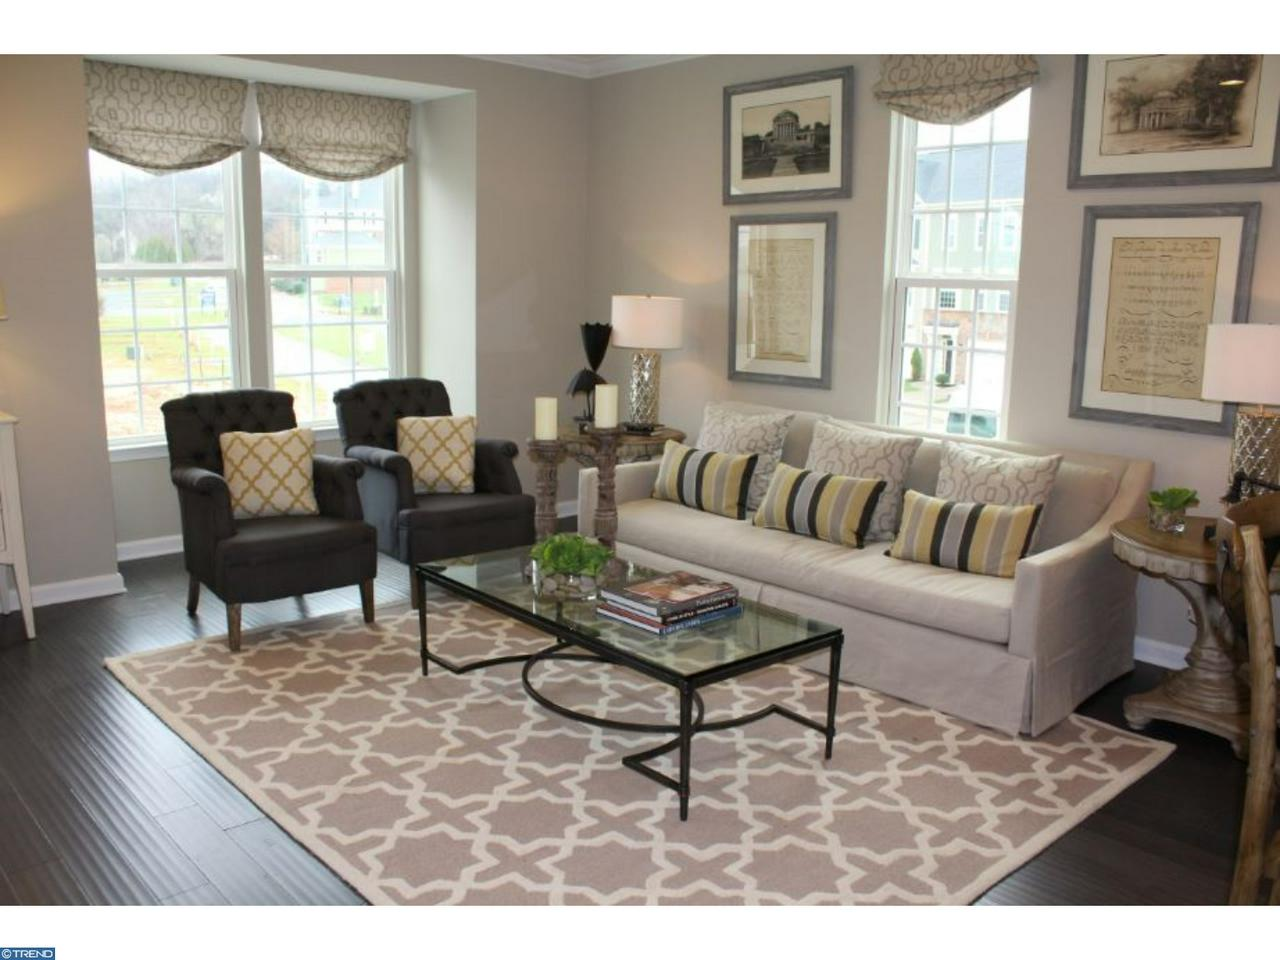 Living room image of property in Parkway South Ridge, Middletown, DE